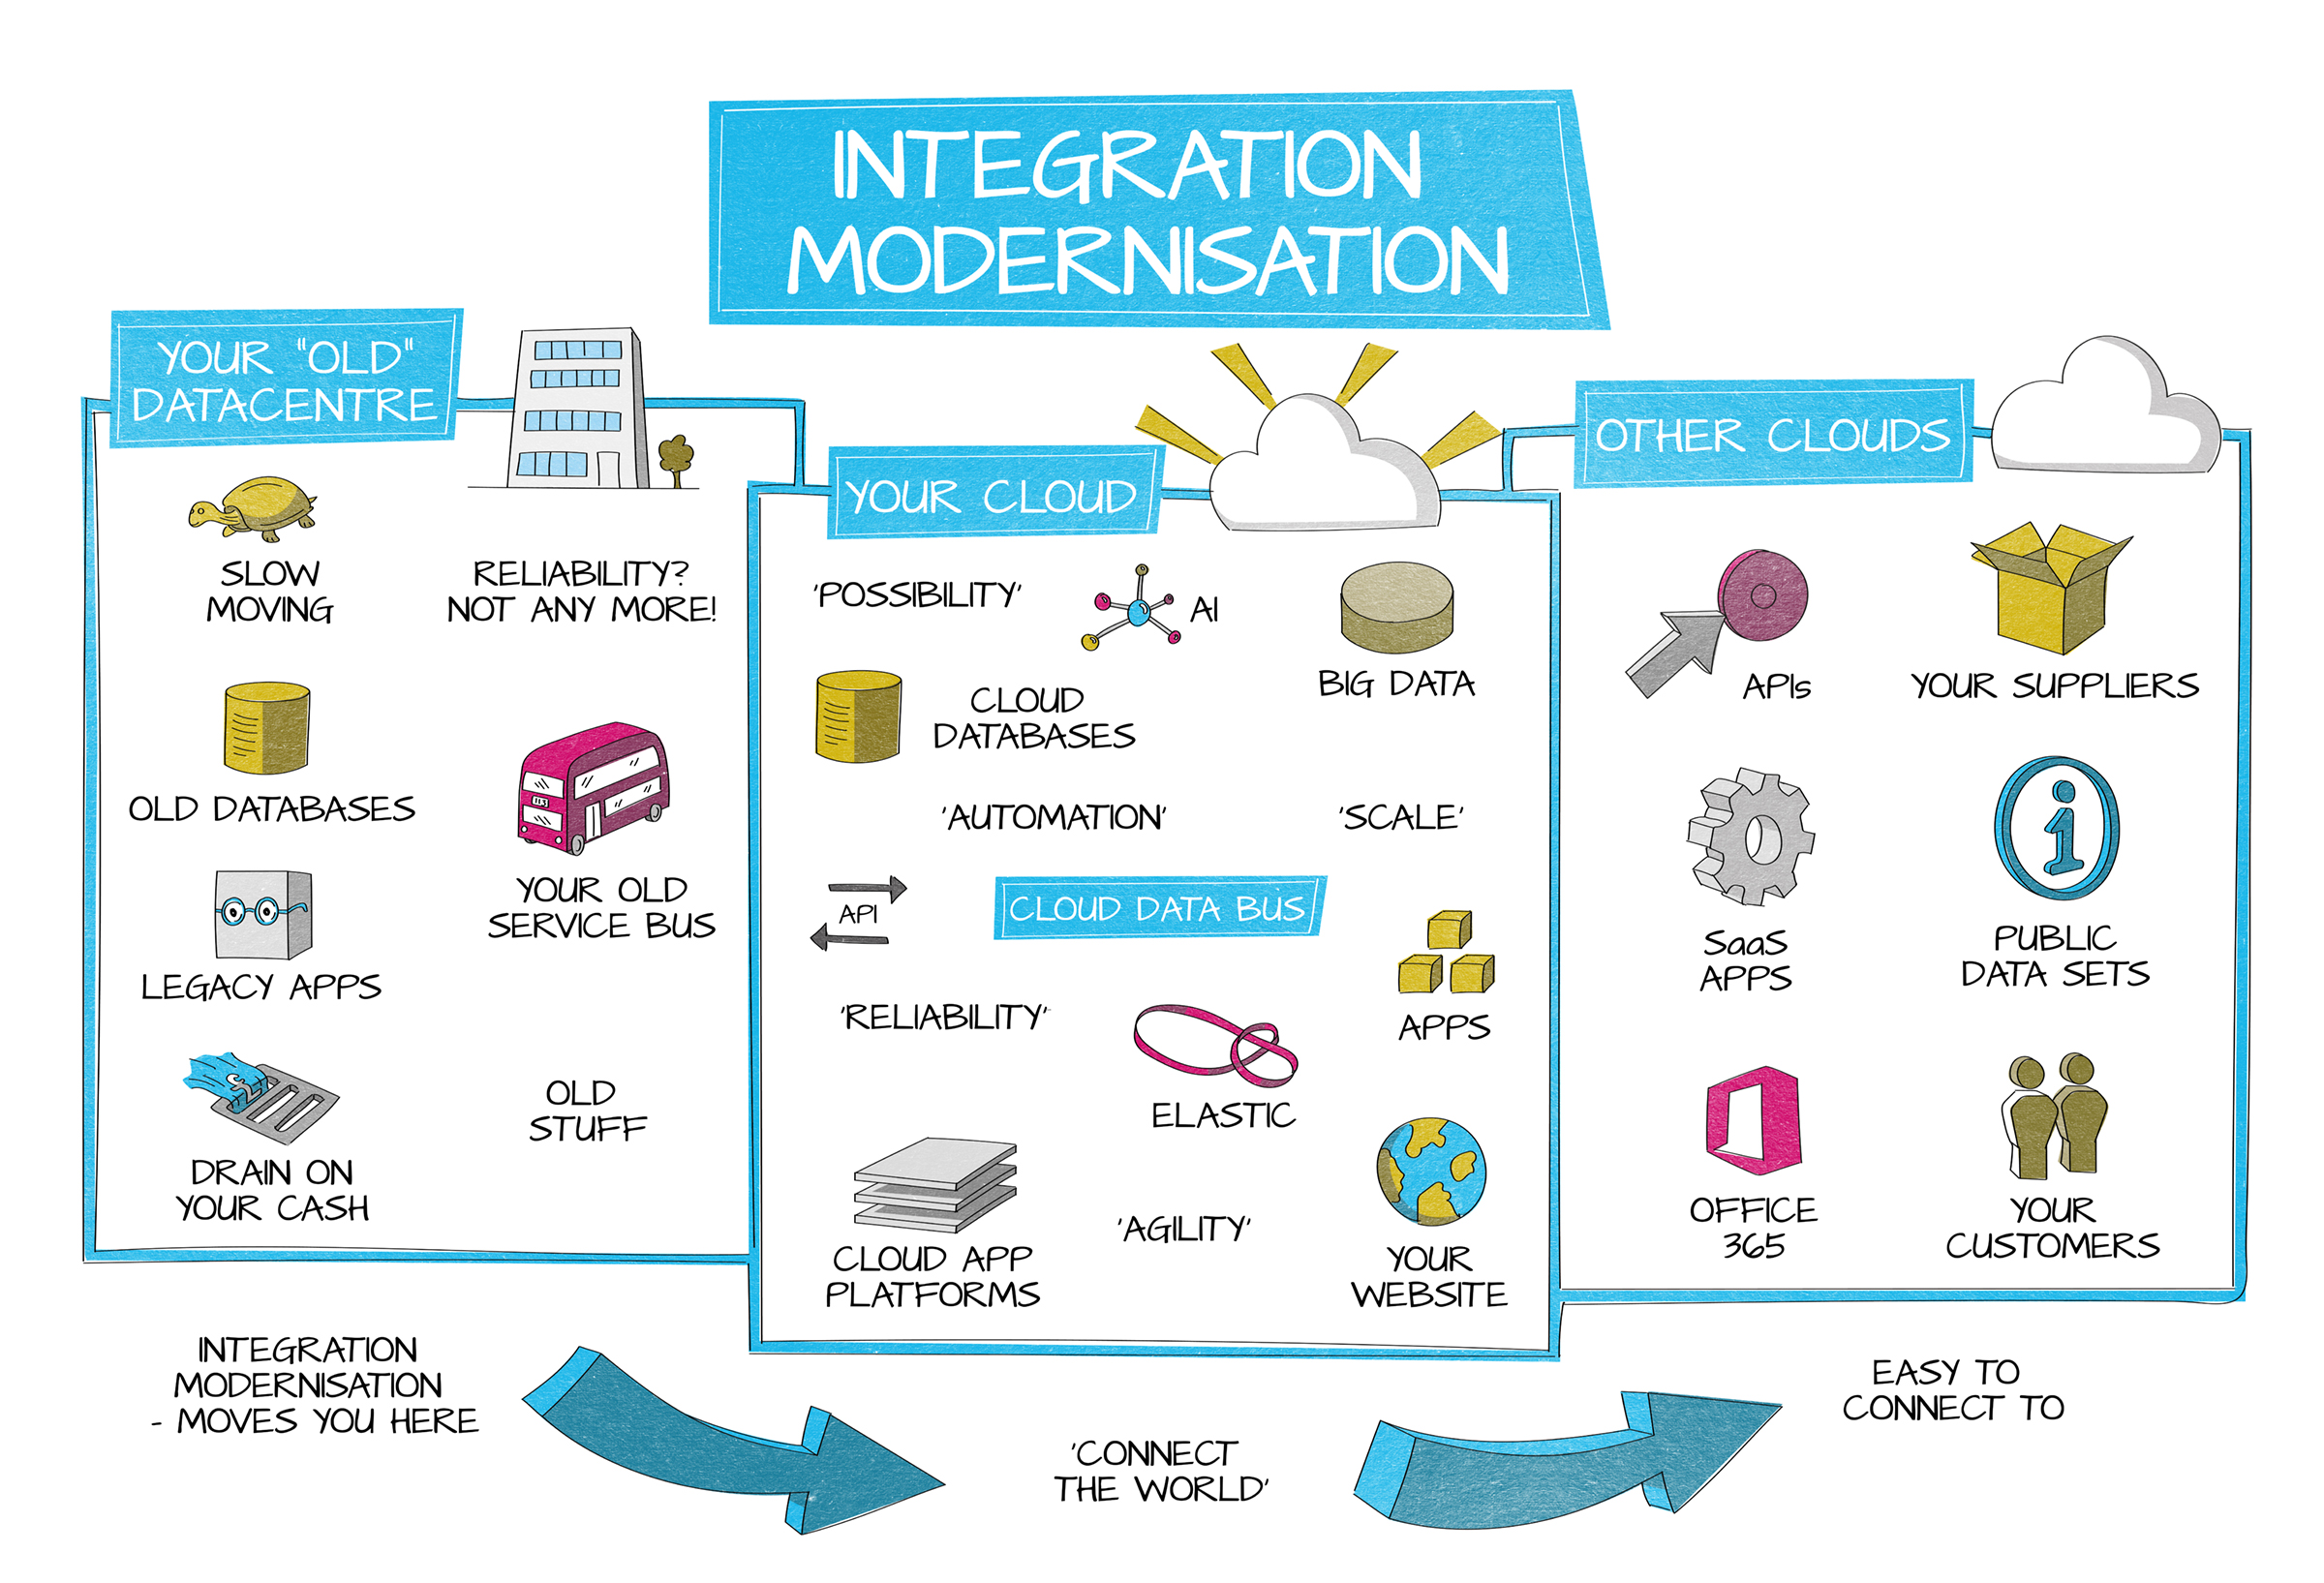 Introduction to Integration Modernisation